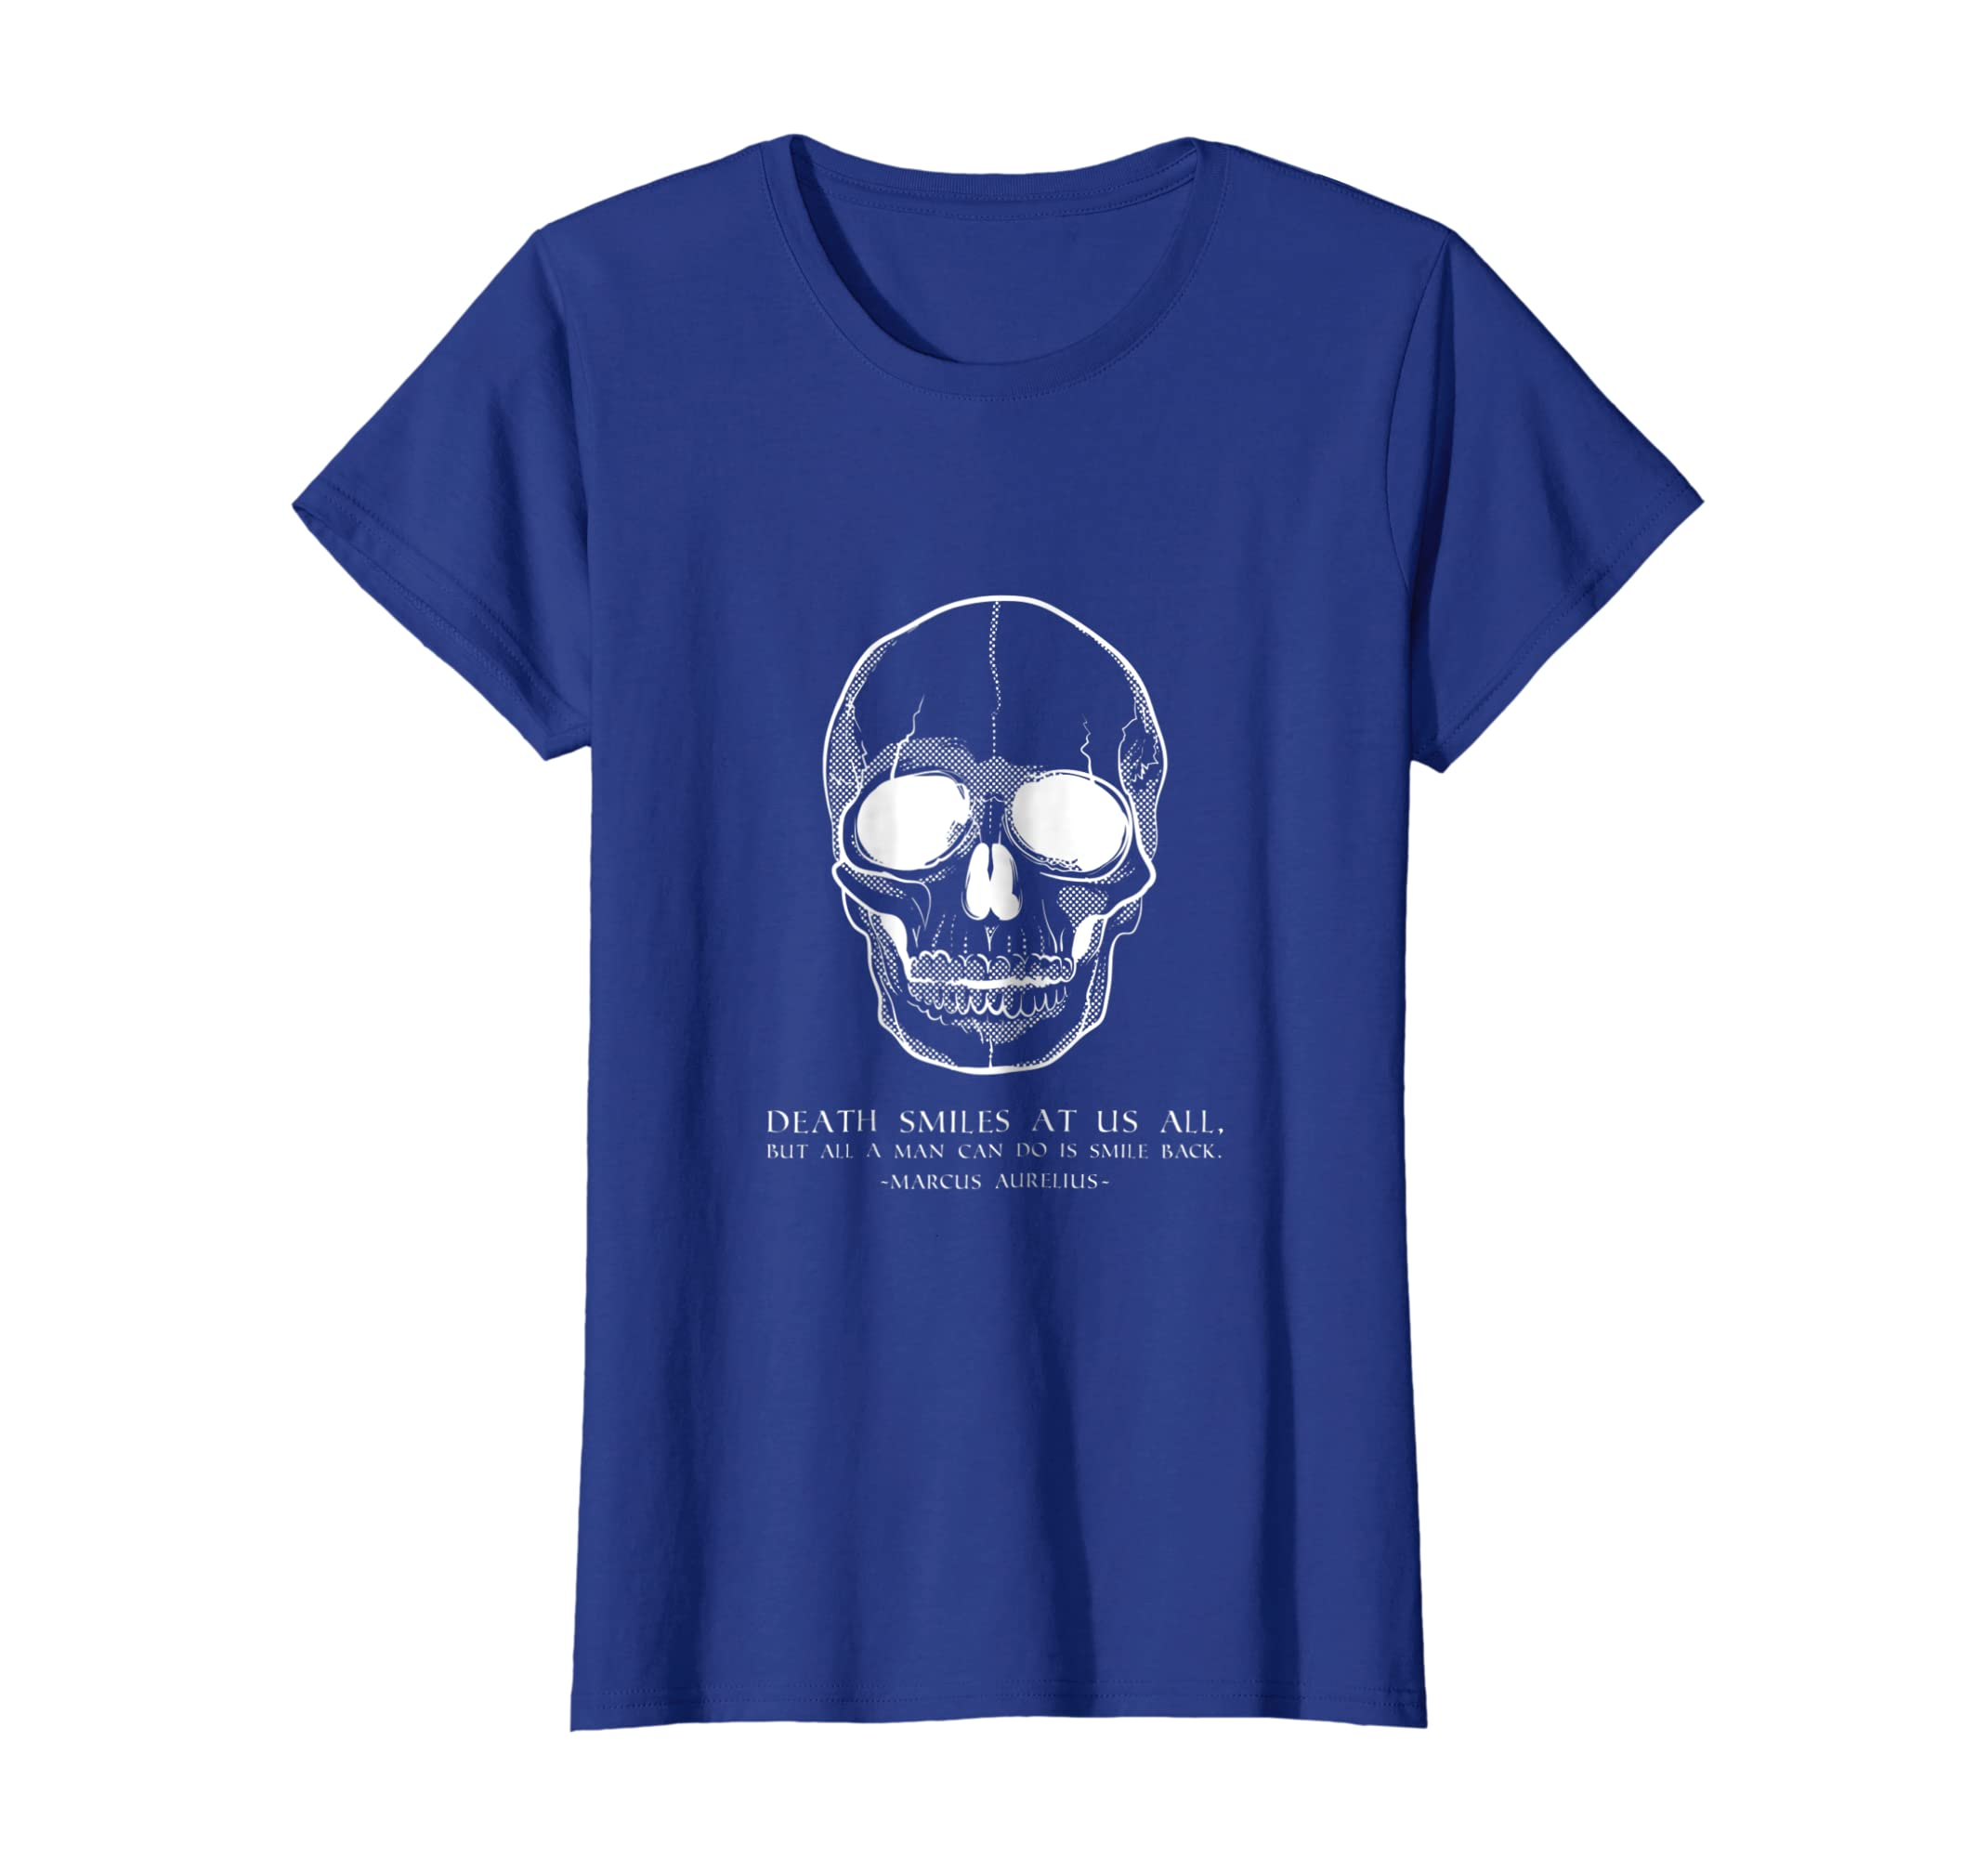 Amazoncom Philosophy Quote Stoic Sayings Marcus Aurelius T Shirt